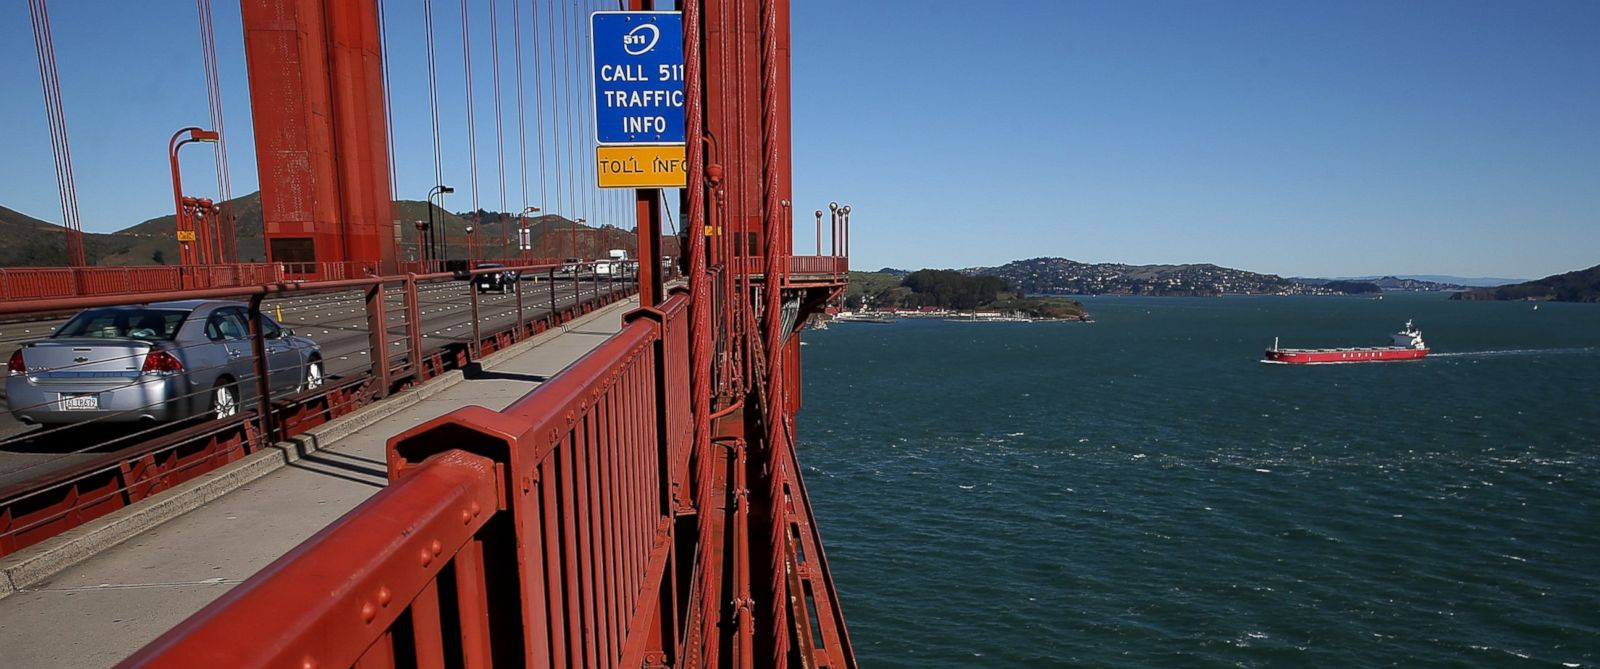 weird phobias GTY_golden_gate_bridge_tk_140327_12x5_1600